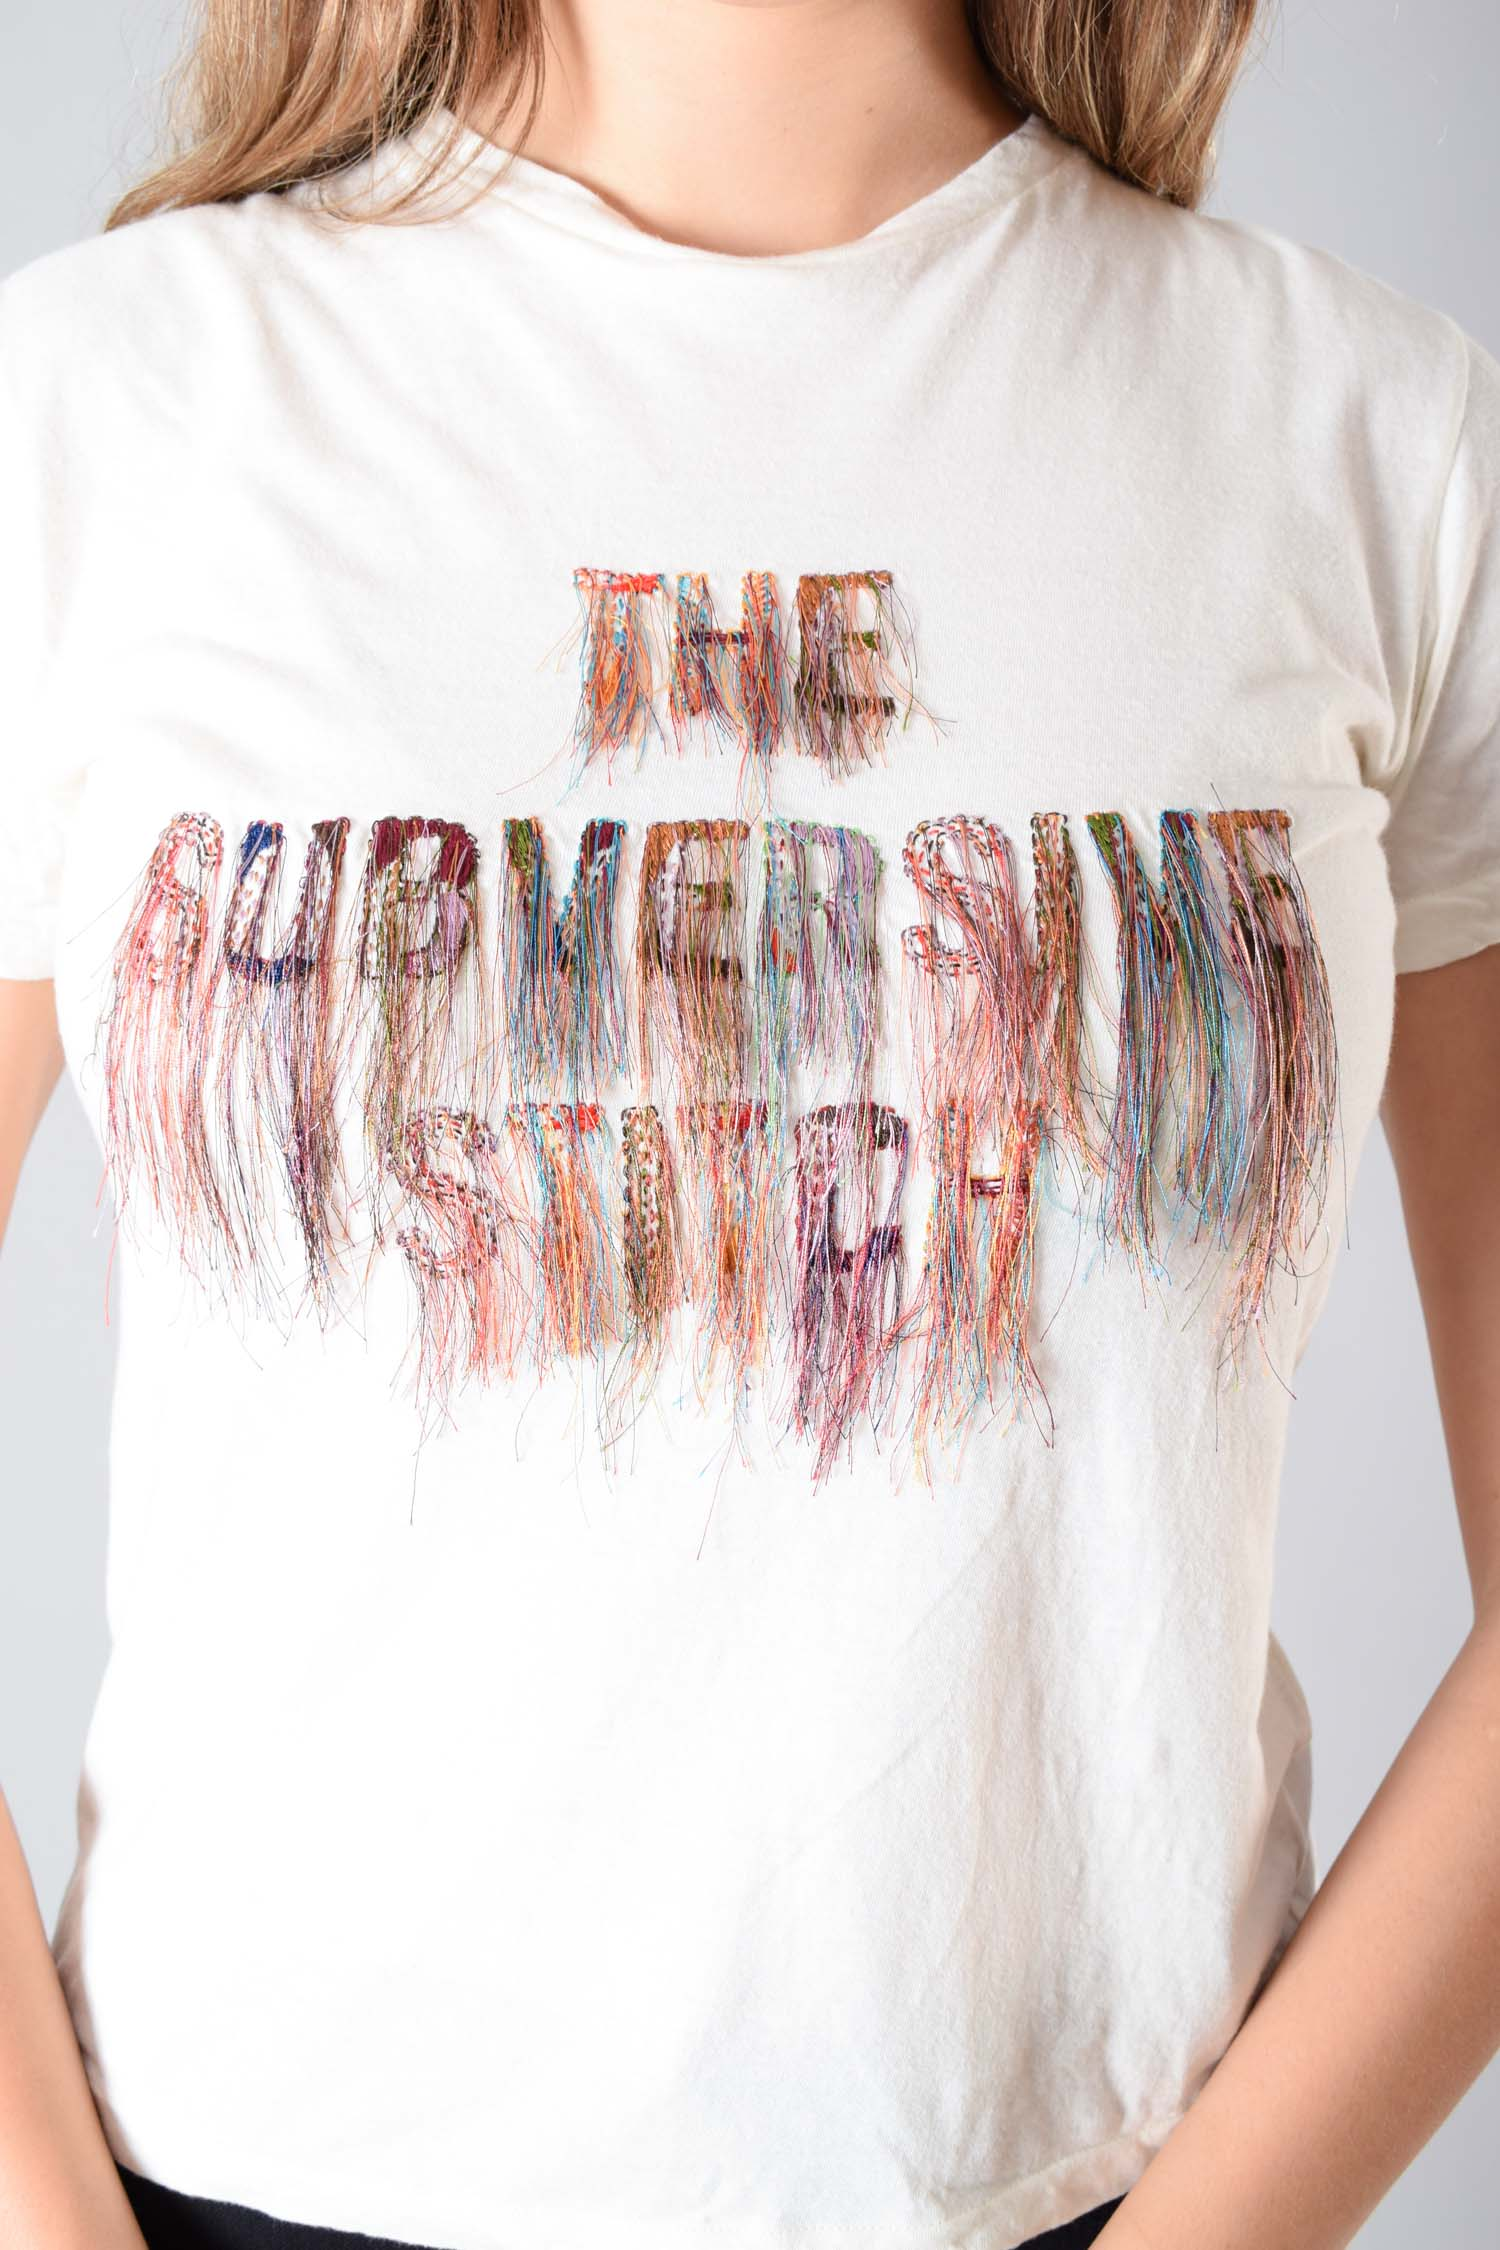 Christian Dior 2019 'The Subversive Stitch' Fringe T-Shirt Size XS